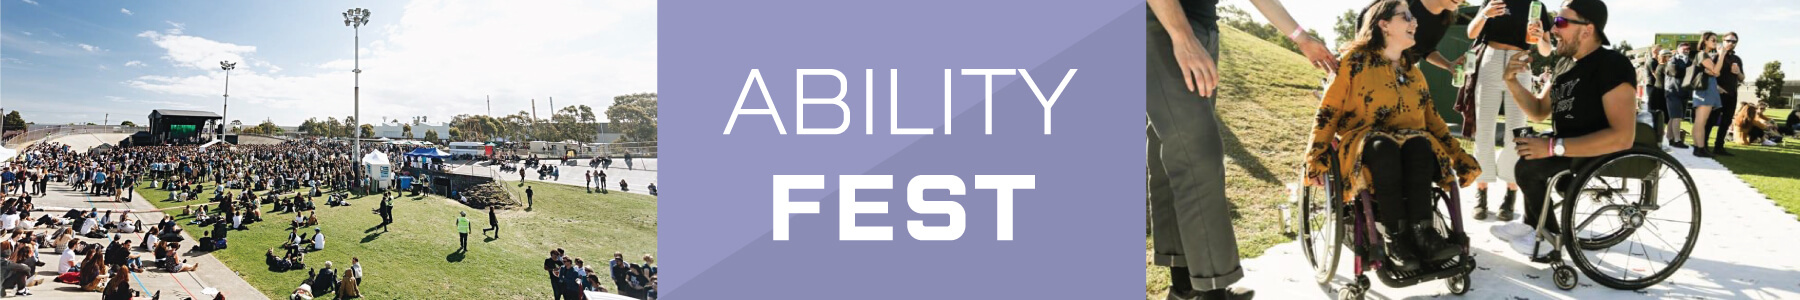 ability fest 2018